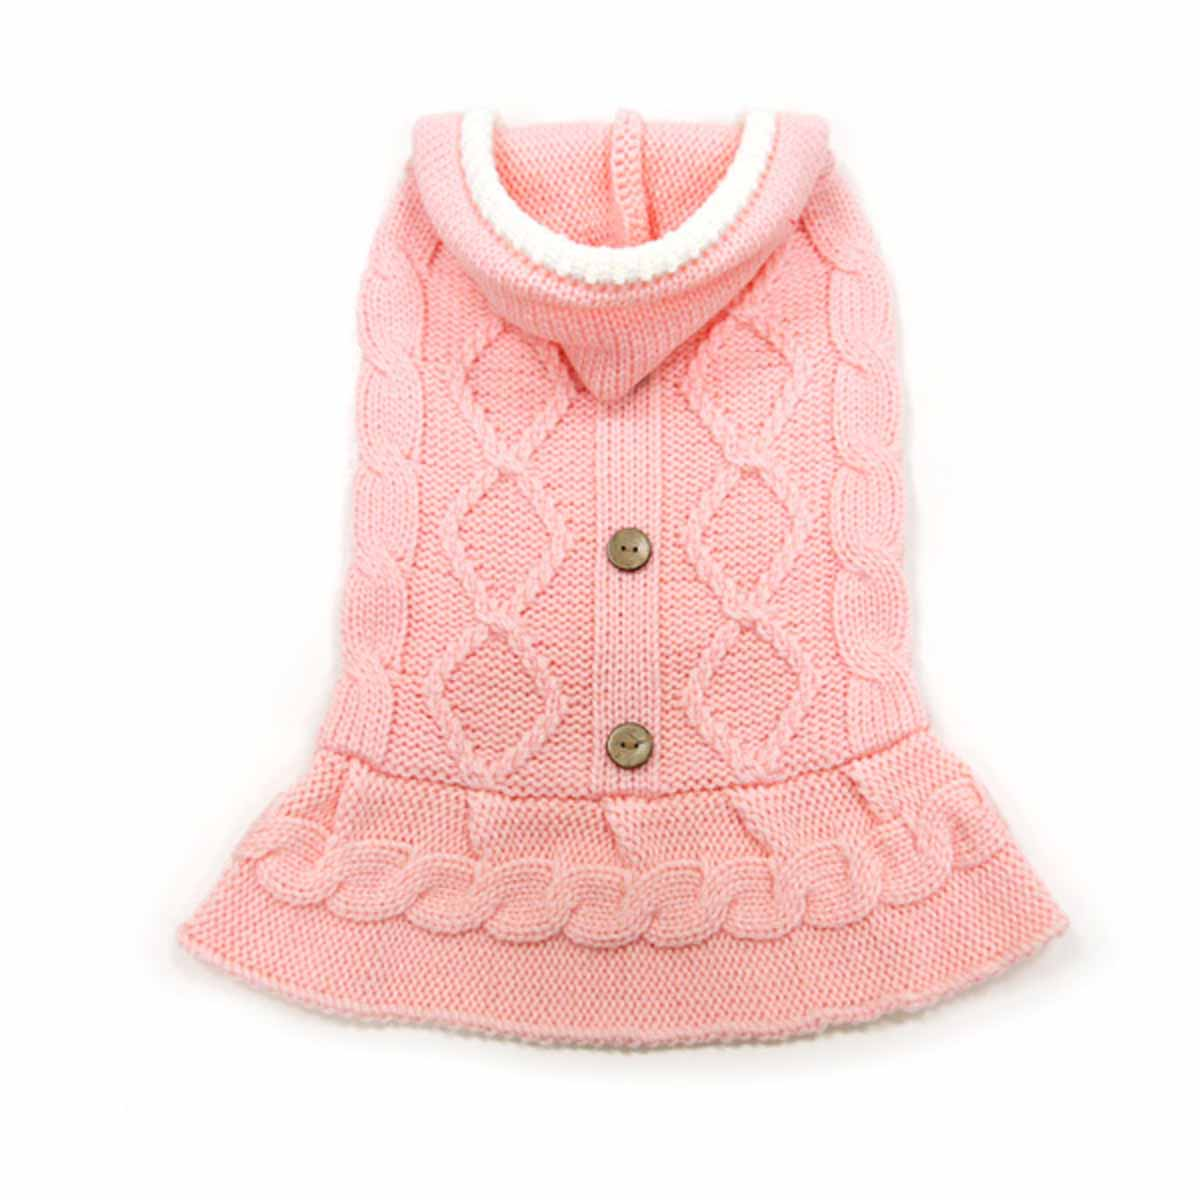 Cable Hoodie Dog Sweater Dress by Dogo - Pink